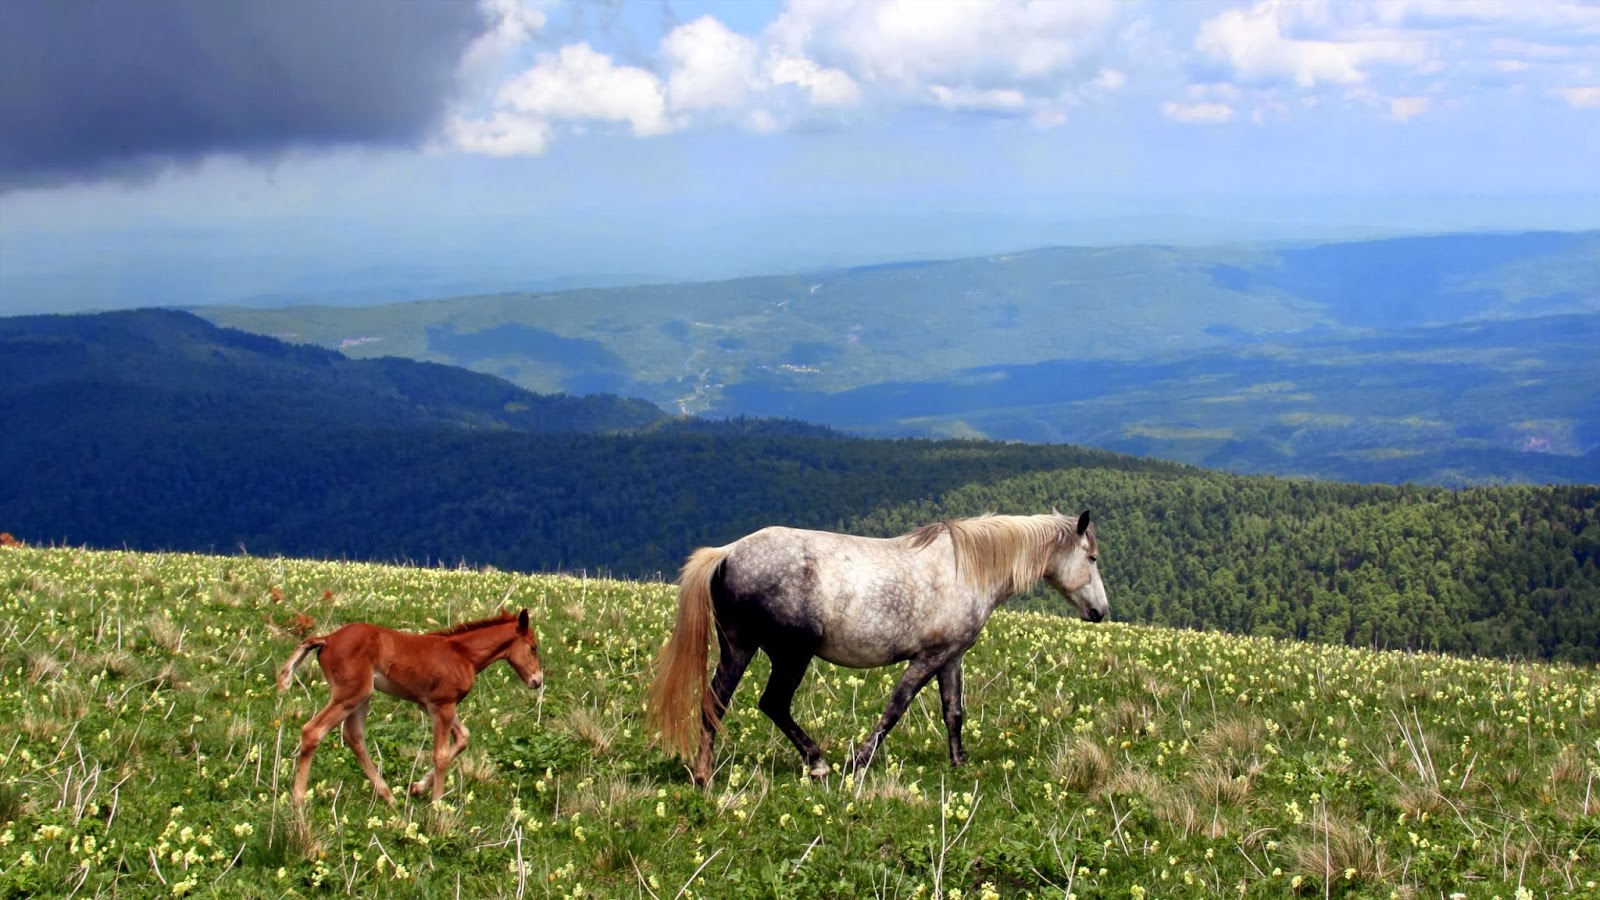 Amazing   Wallpaper Horse Landscape - 431632  2018_783975.jpg